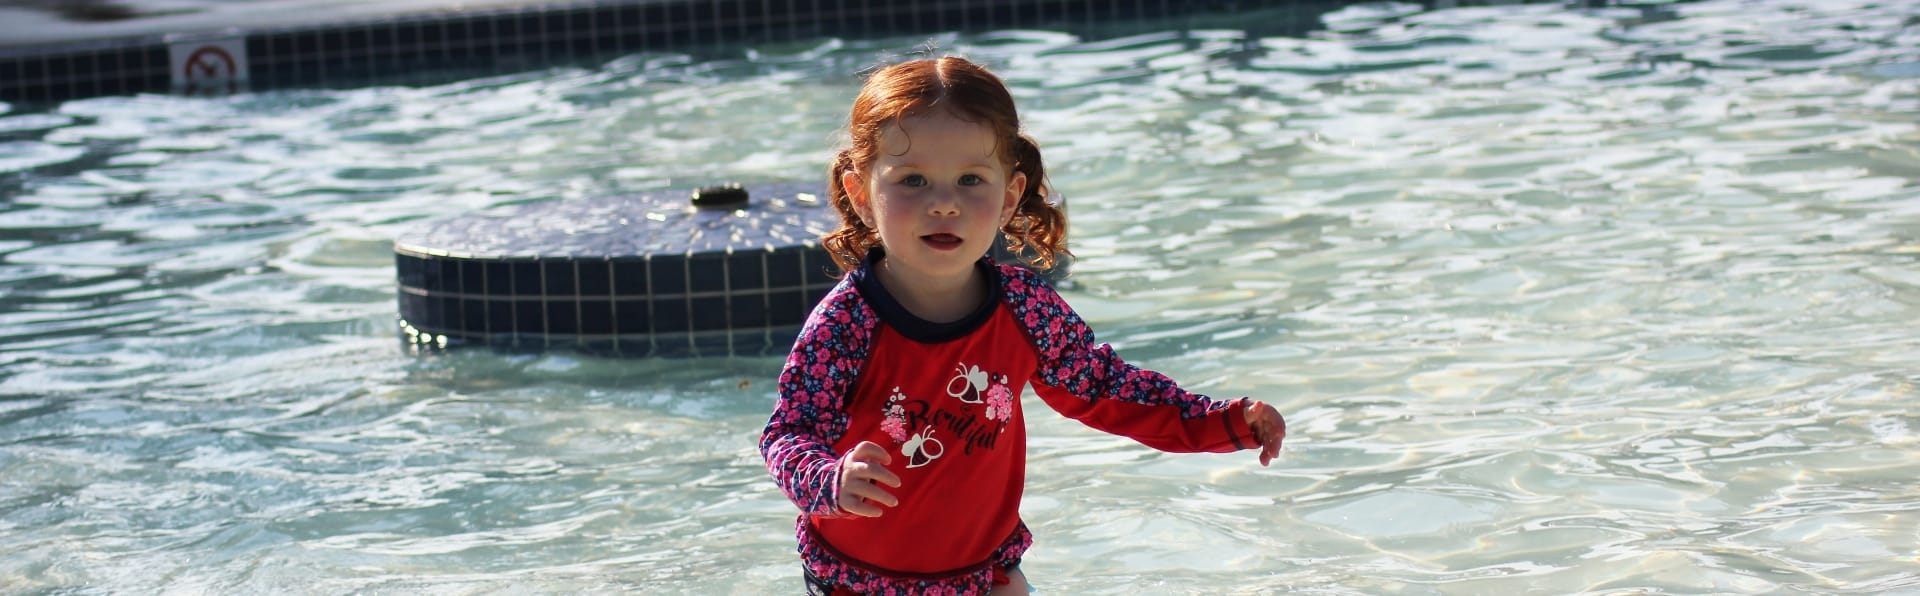 Little girl playing in water at the spray park.